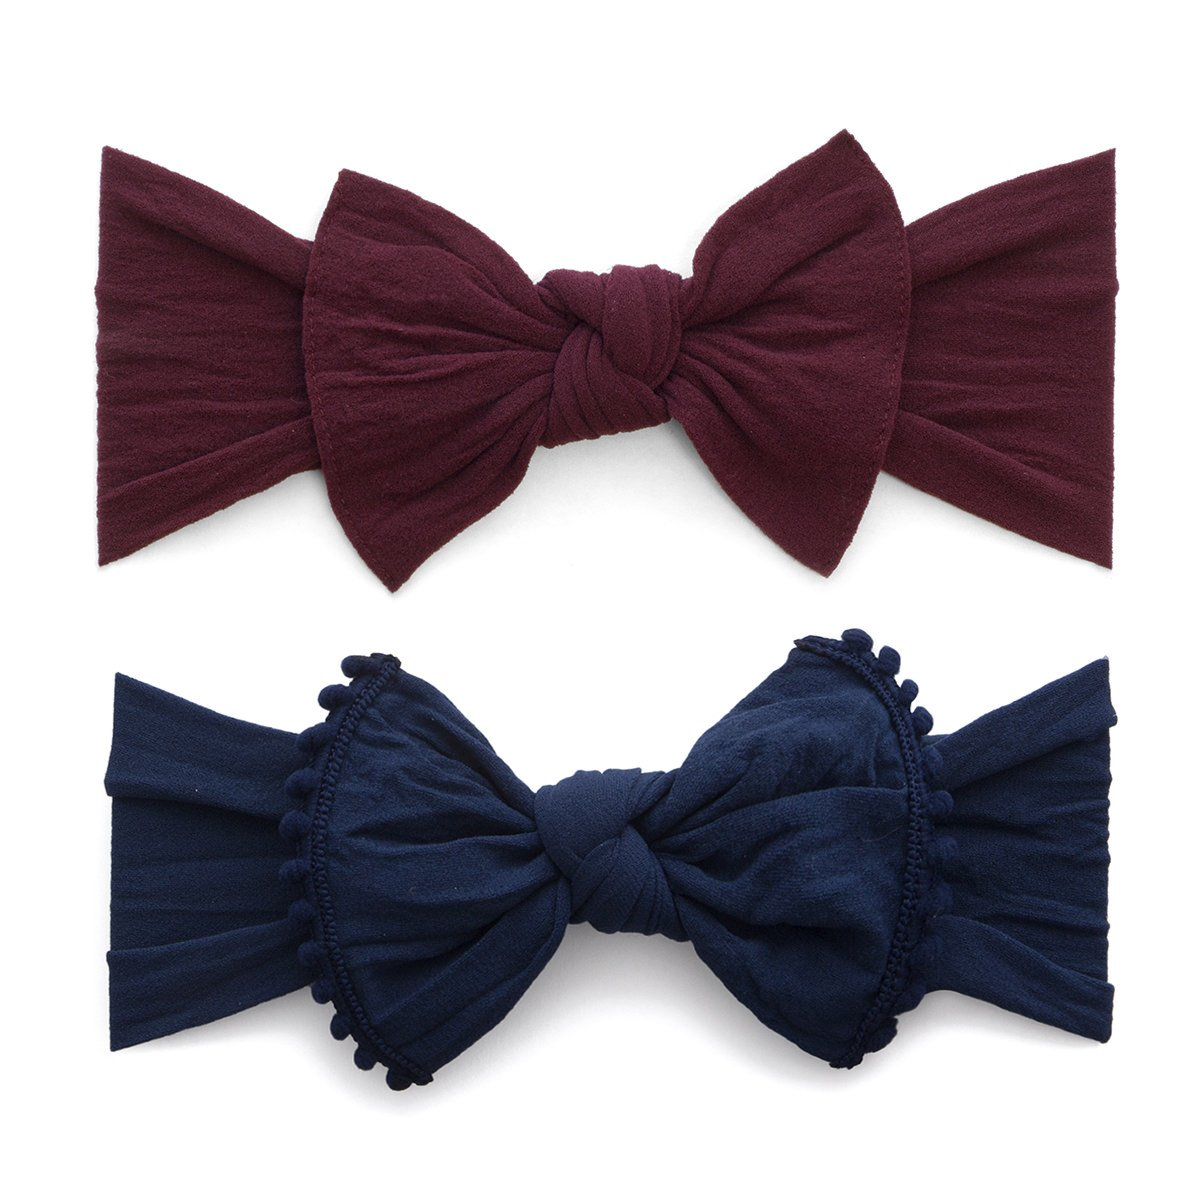 Baby Bling 2 Pack: Trimmed and Classic Knot Girls Baby Headbands - Burgundy/Navy